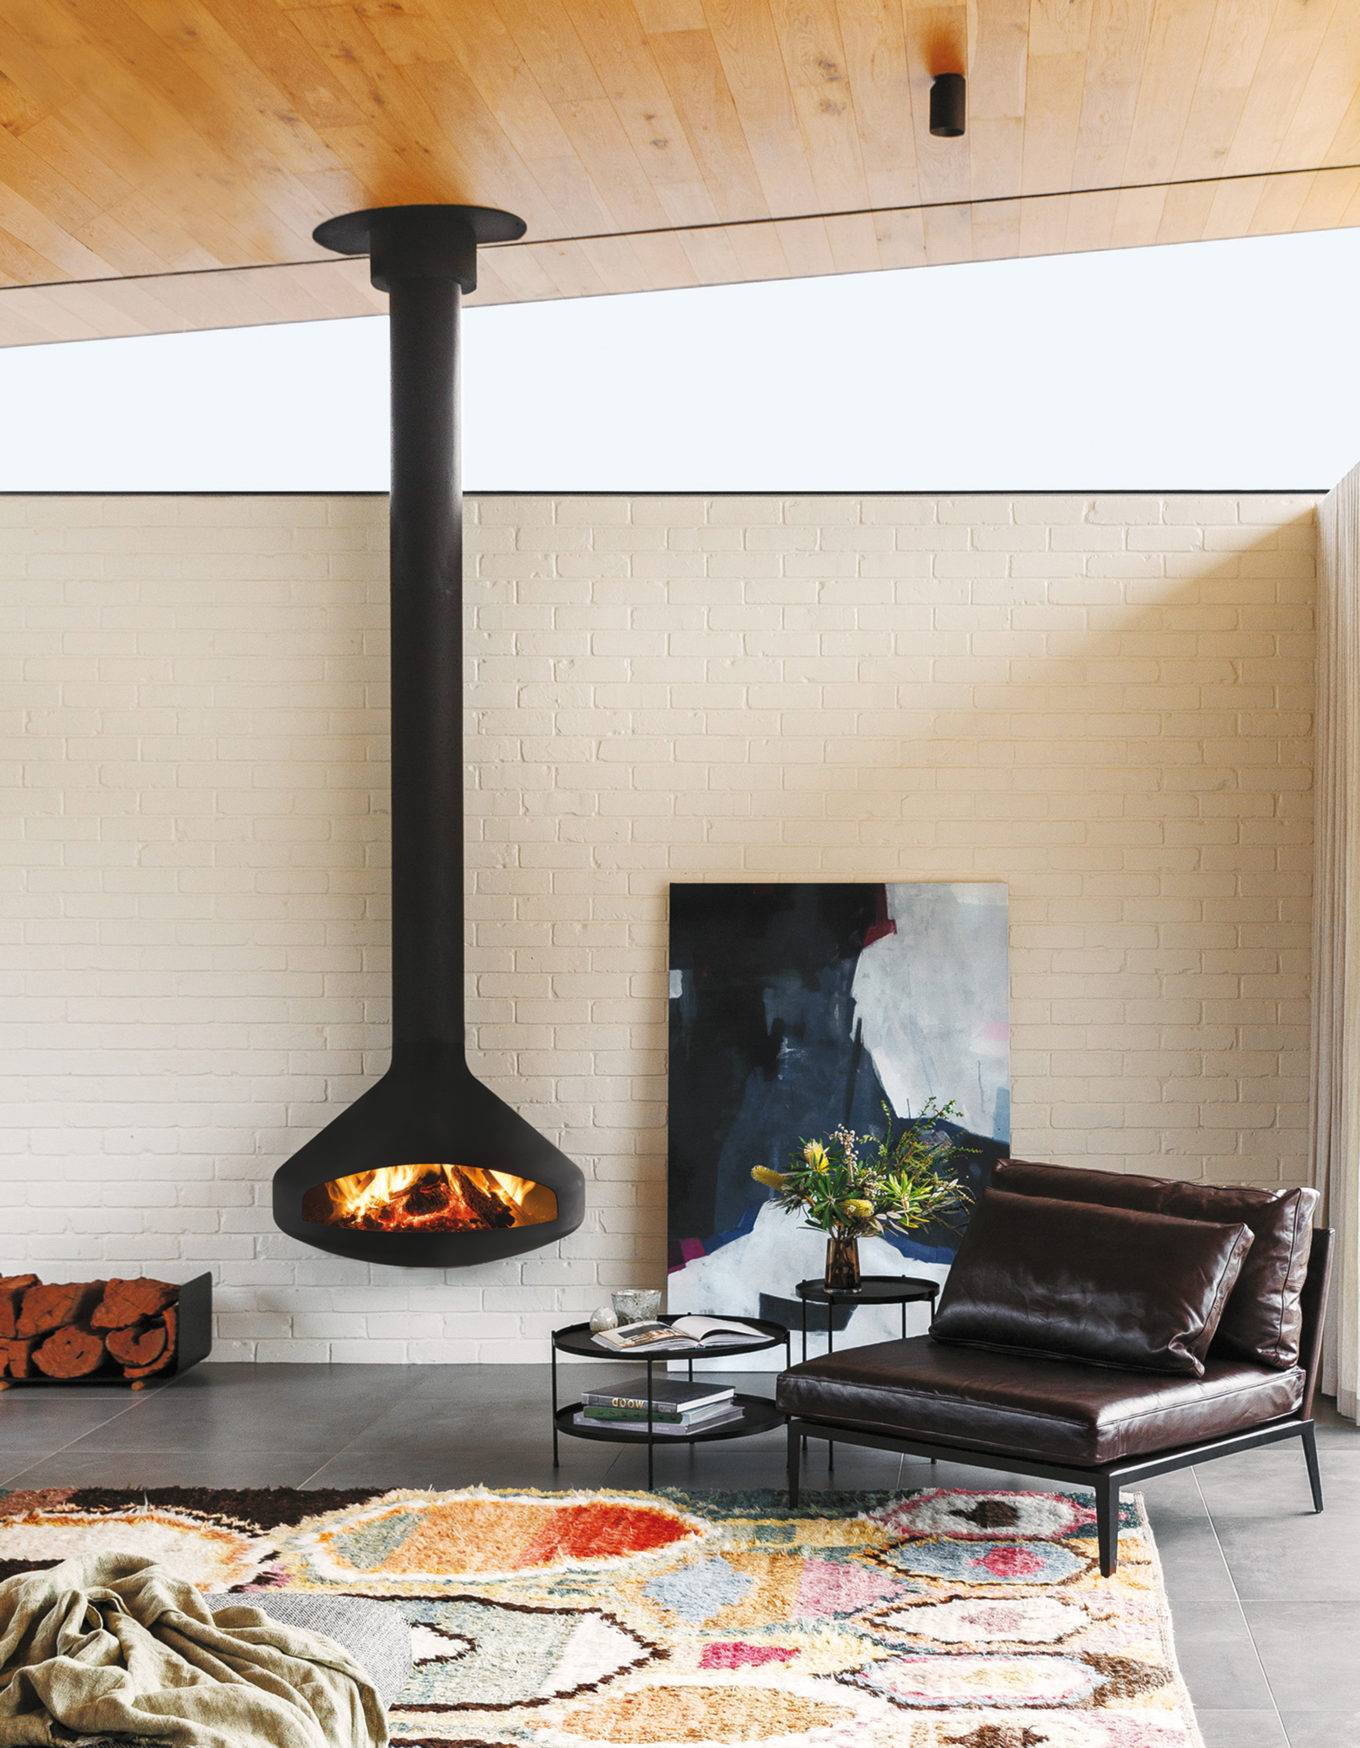 Wall Mounted Natural Gas Fireplace Awesome Paxfocus by Focus Fires